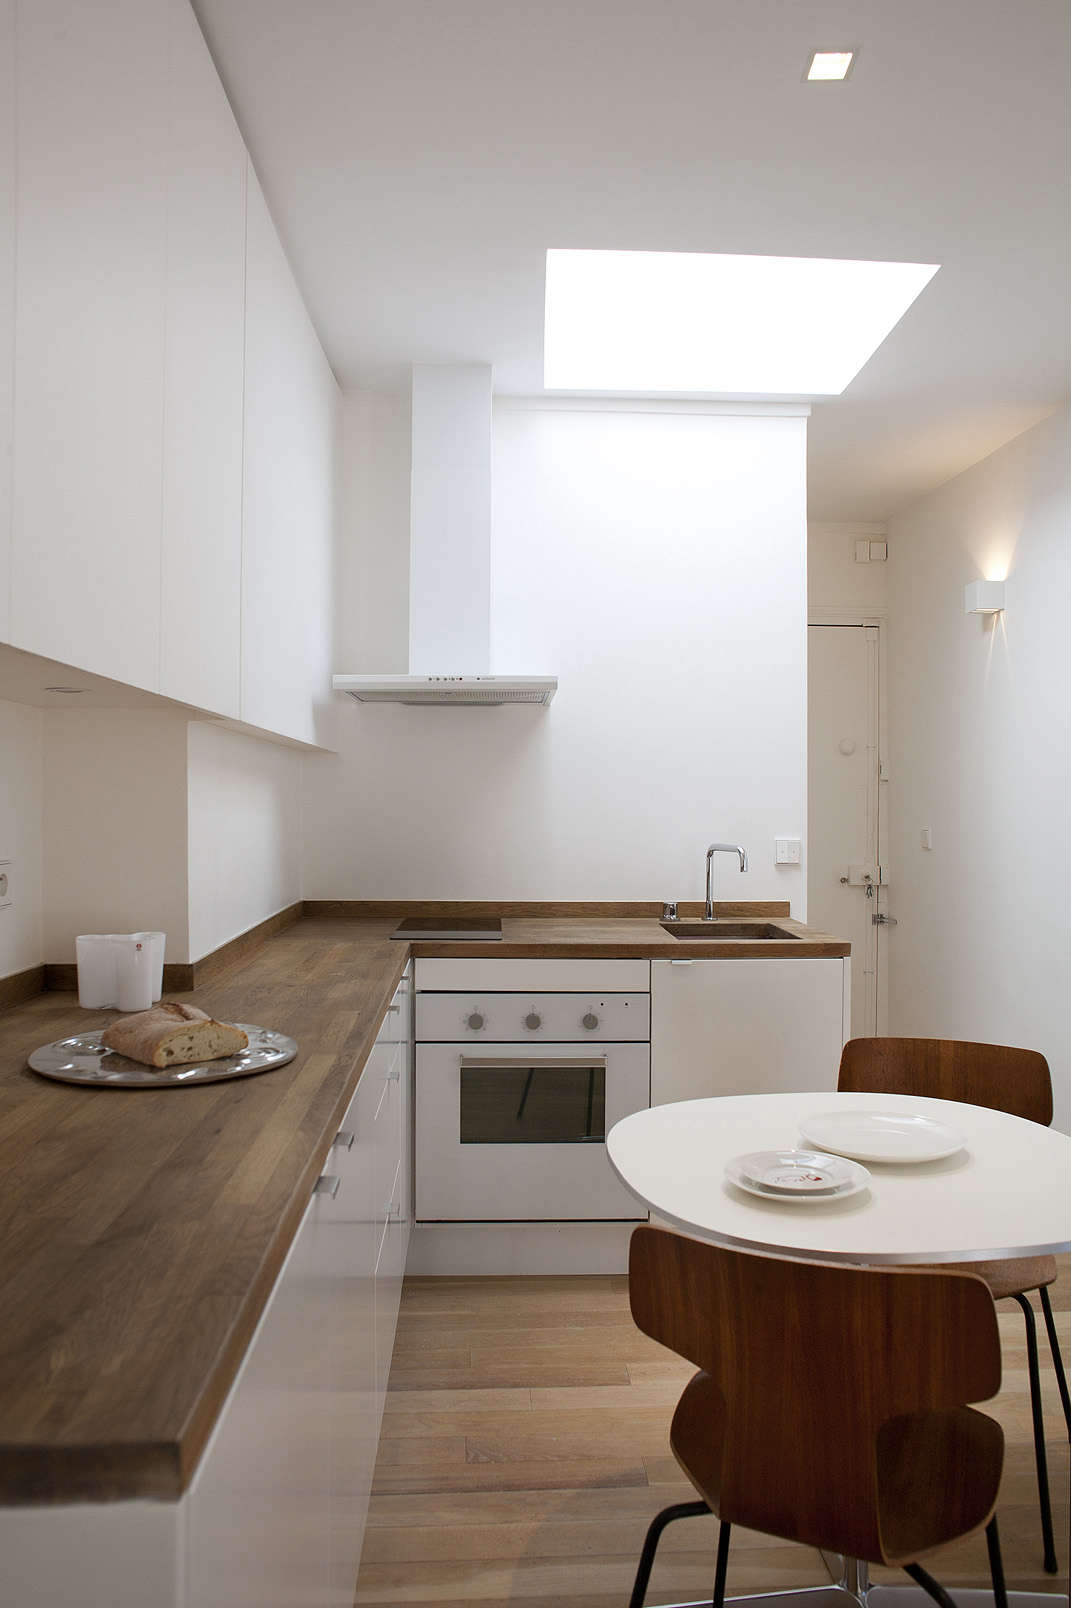 Ikea kitchen in a Paris pied-a-terre, a garret remodel in Montparnasse by architect Philippe Harden | Remodelista